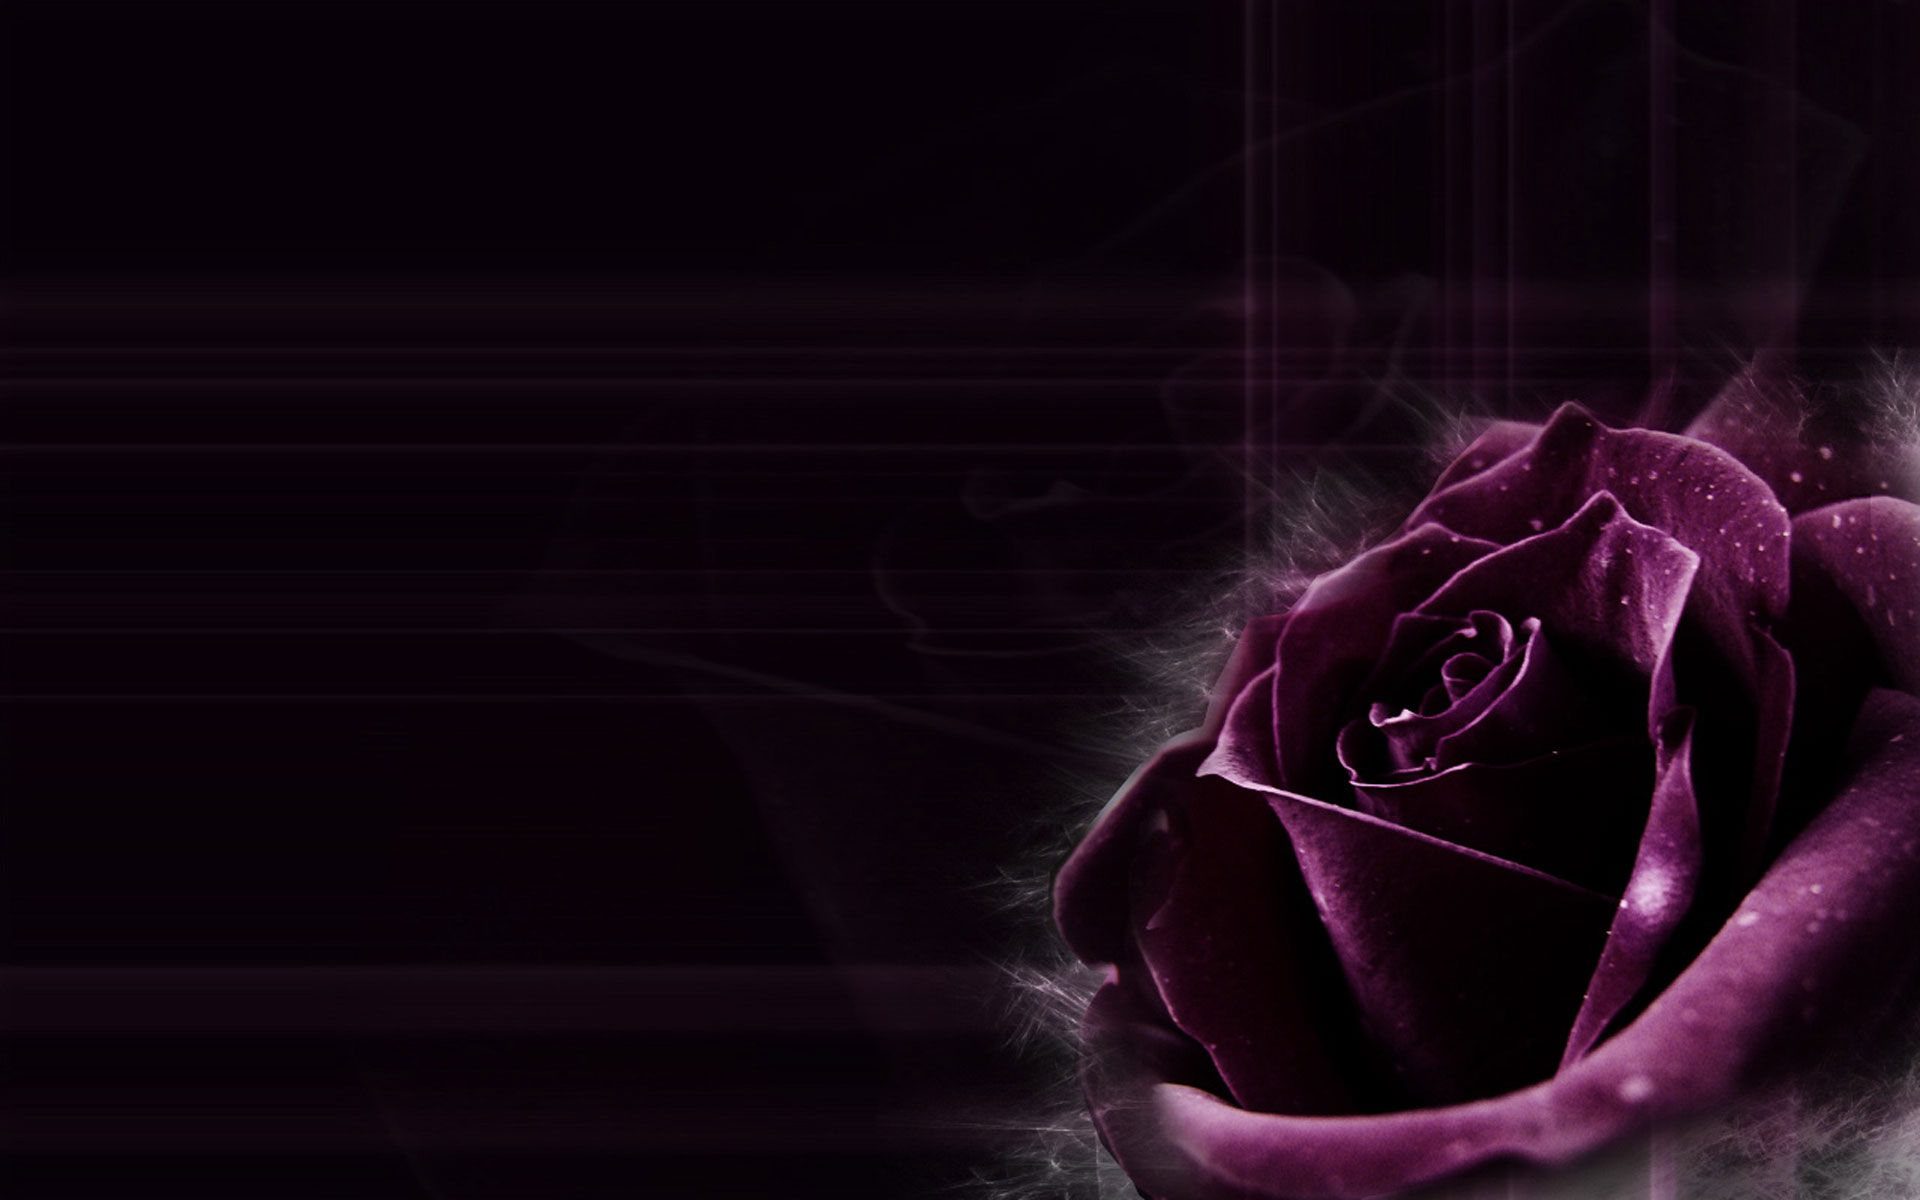 Dark Purple Rose Backgrounds Images Pictures   Becuo 1920x1200